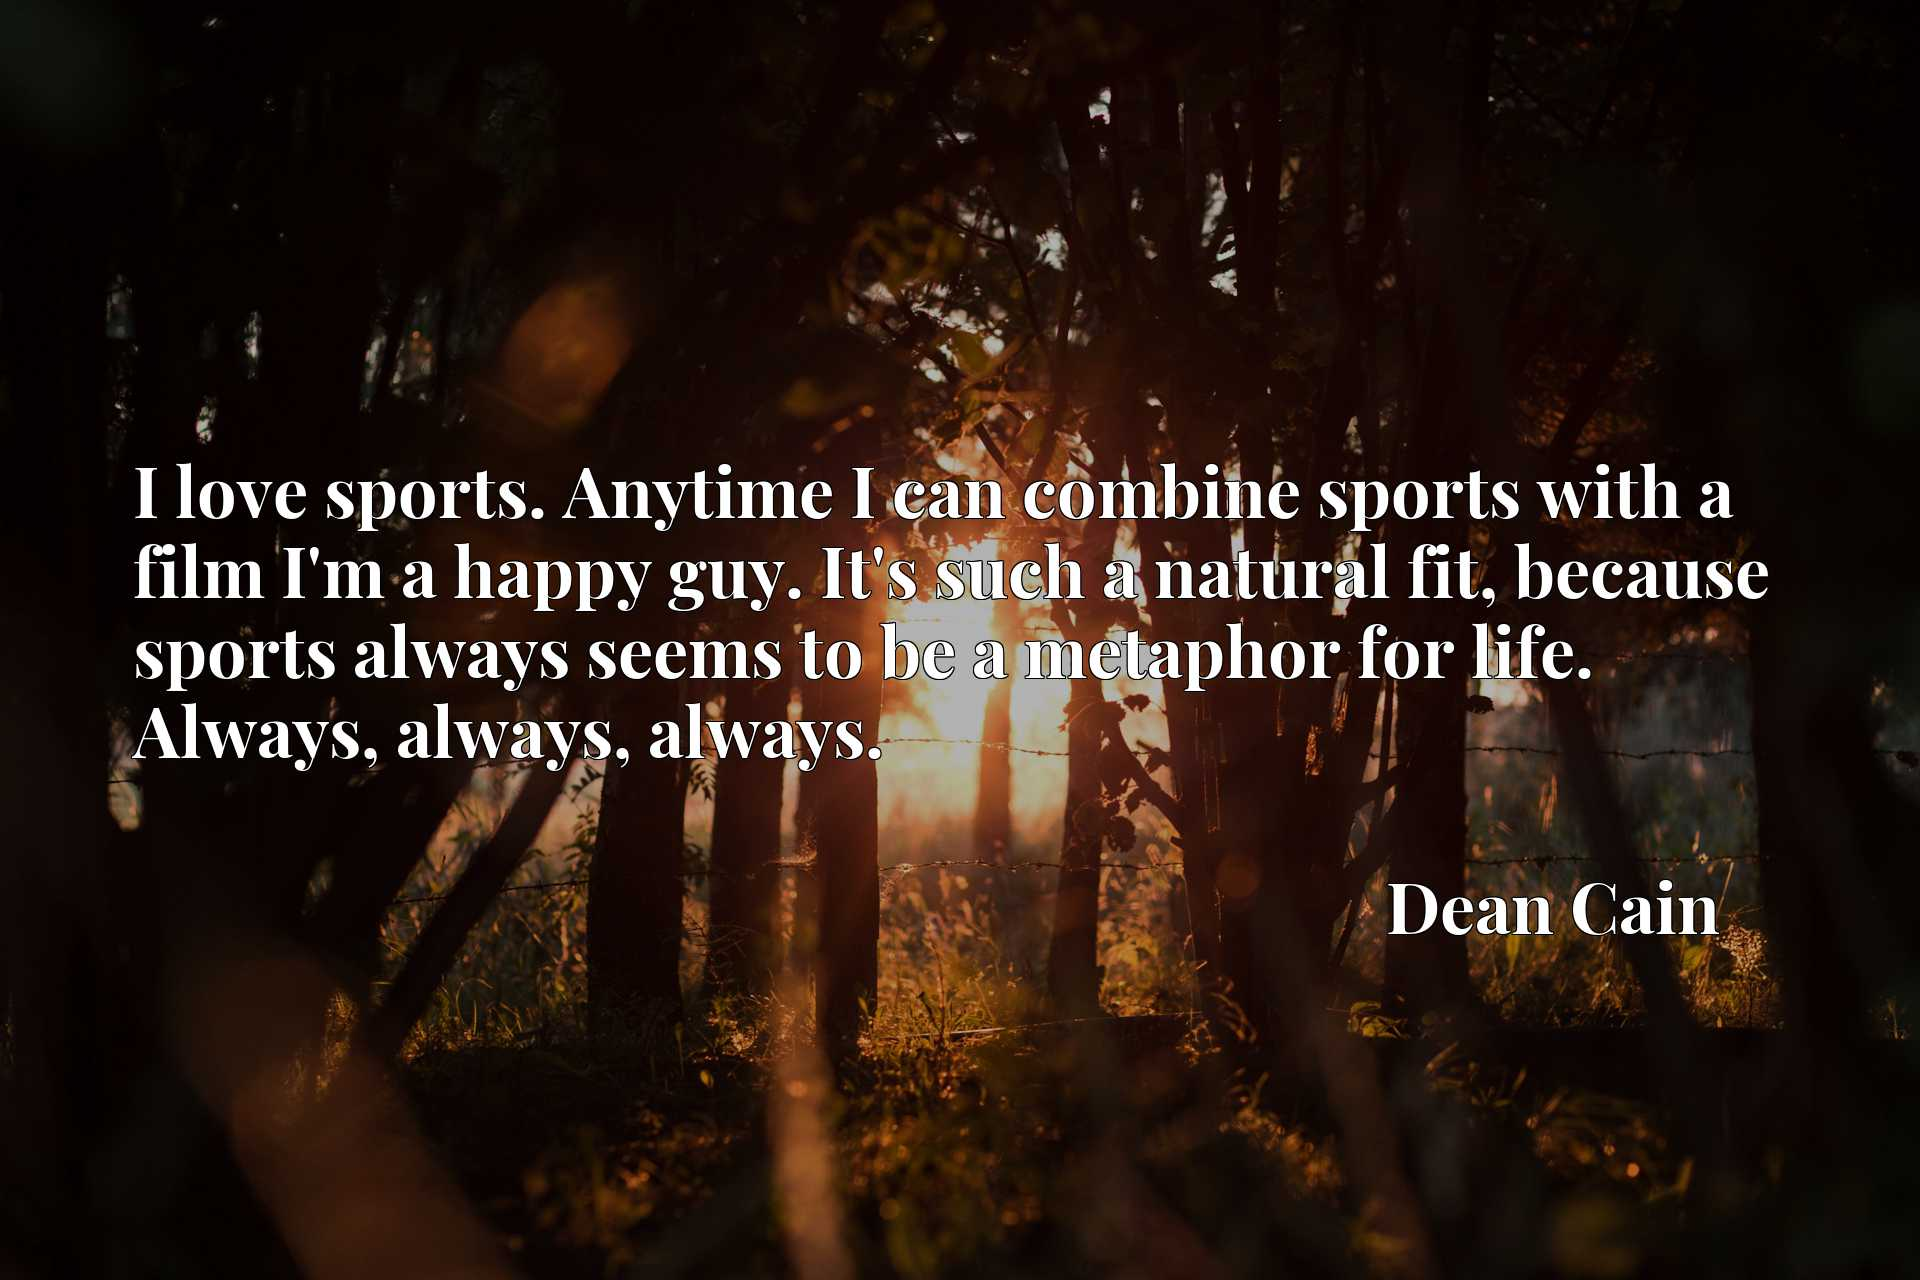 I love sports. Anytime I can combine sports with a film I'm a happy guy. It's such a natural fit, because sports always seems to be a metaphor for life. Always, always, always.